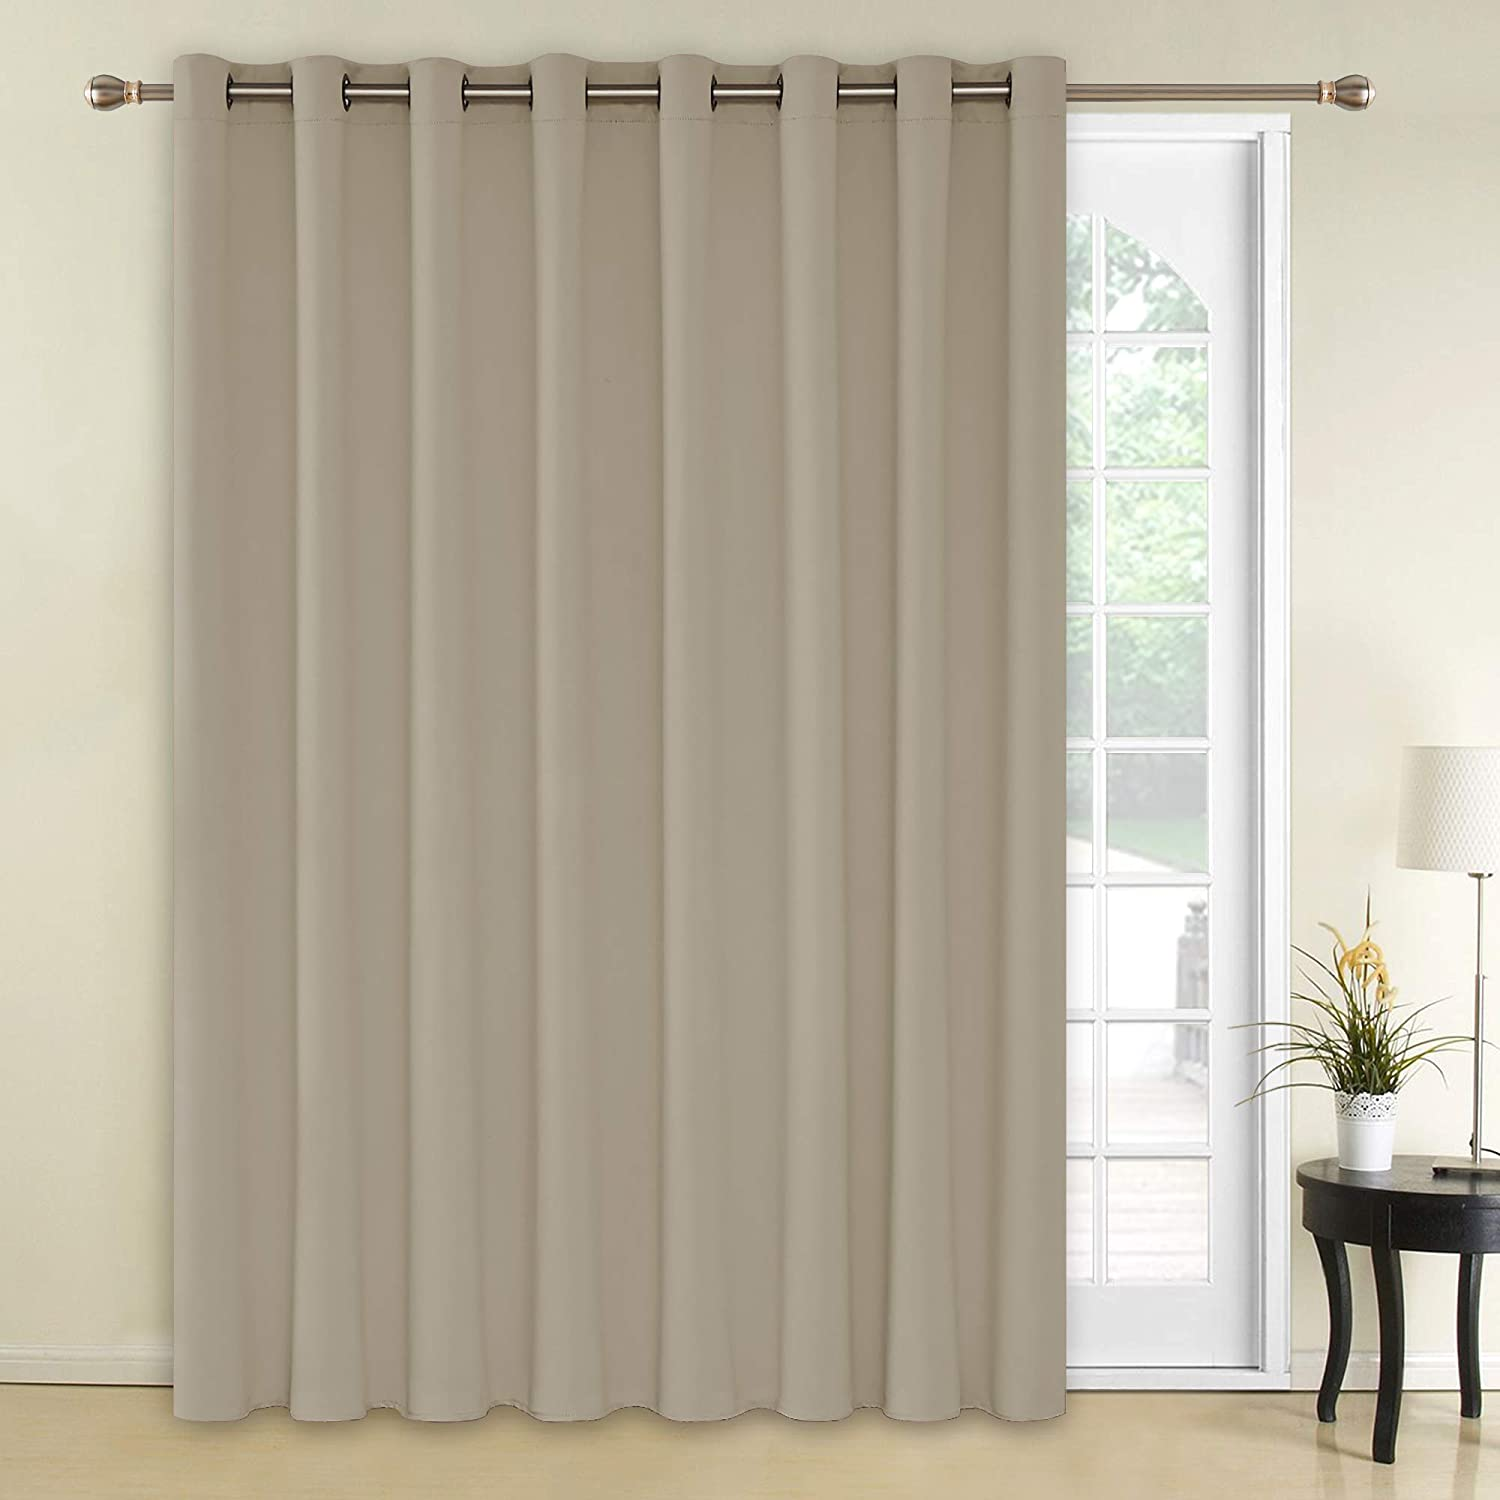 Amazoncom Deconovo Solid Grommet Blackout Curtains 1 Panel Wide